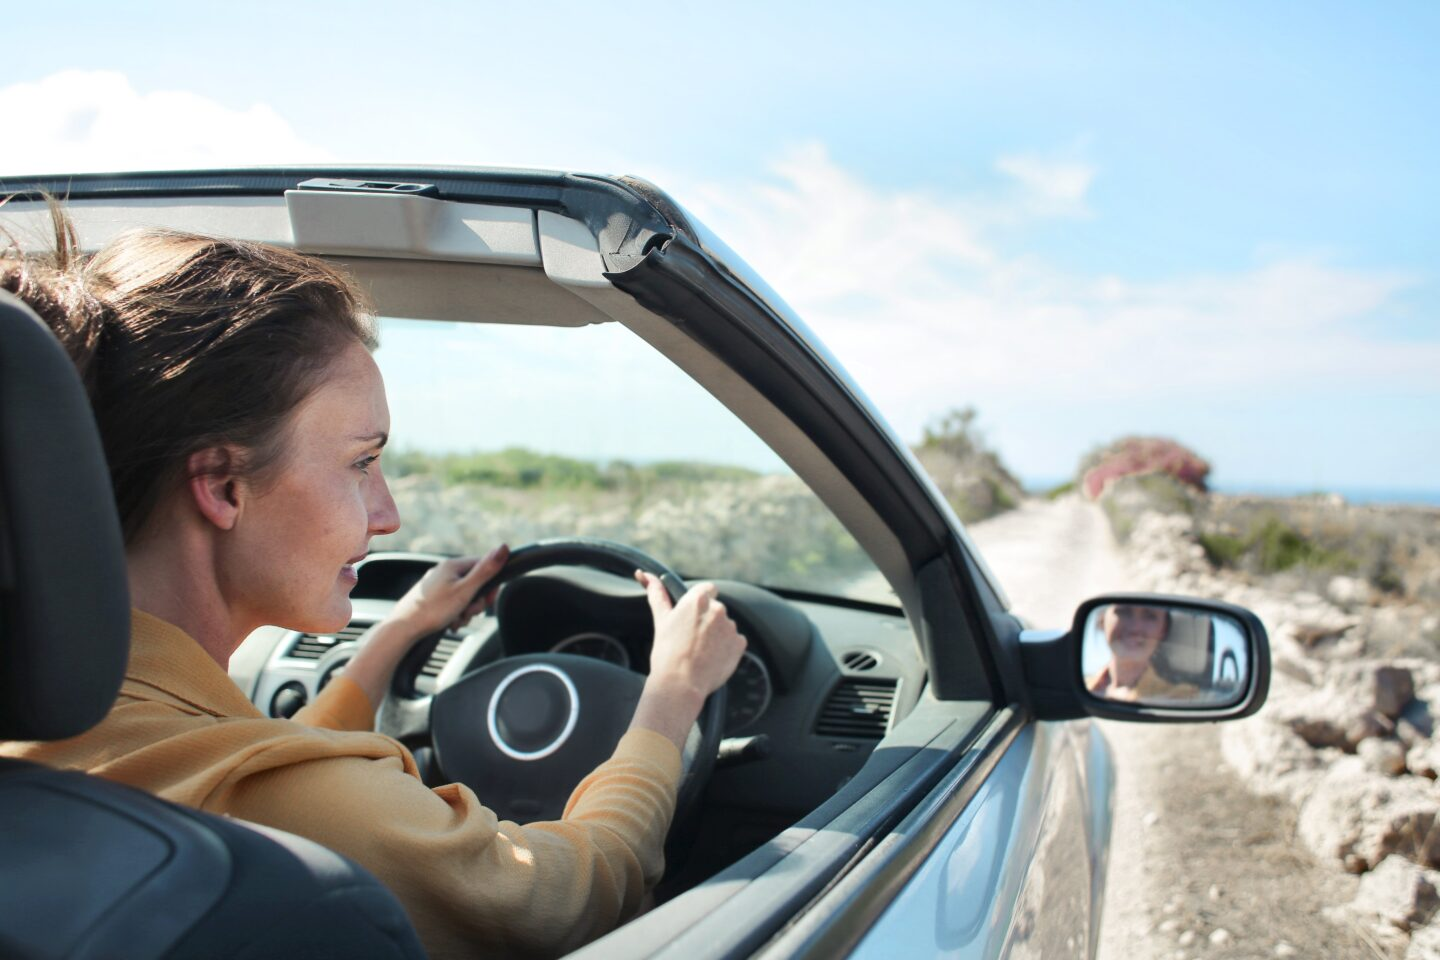 5 Apps to Make Savings on Your Vehicle Expenses